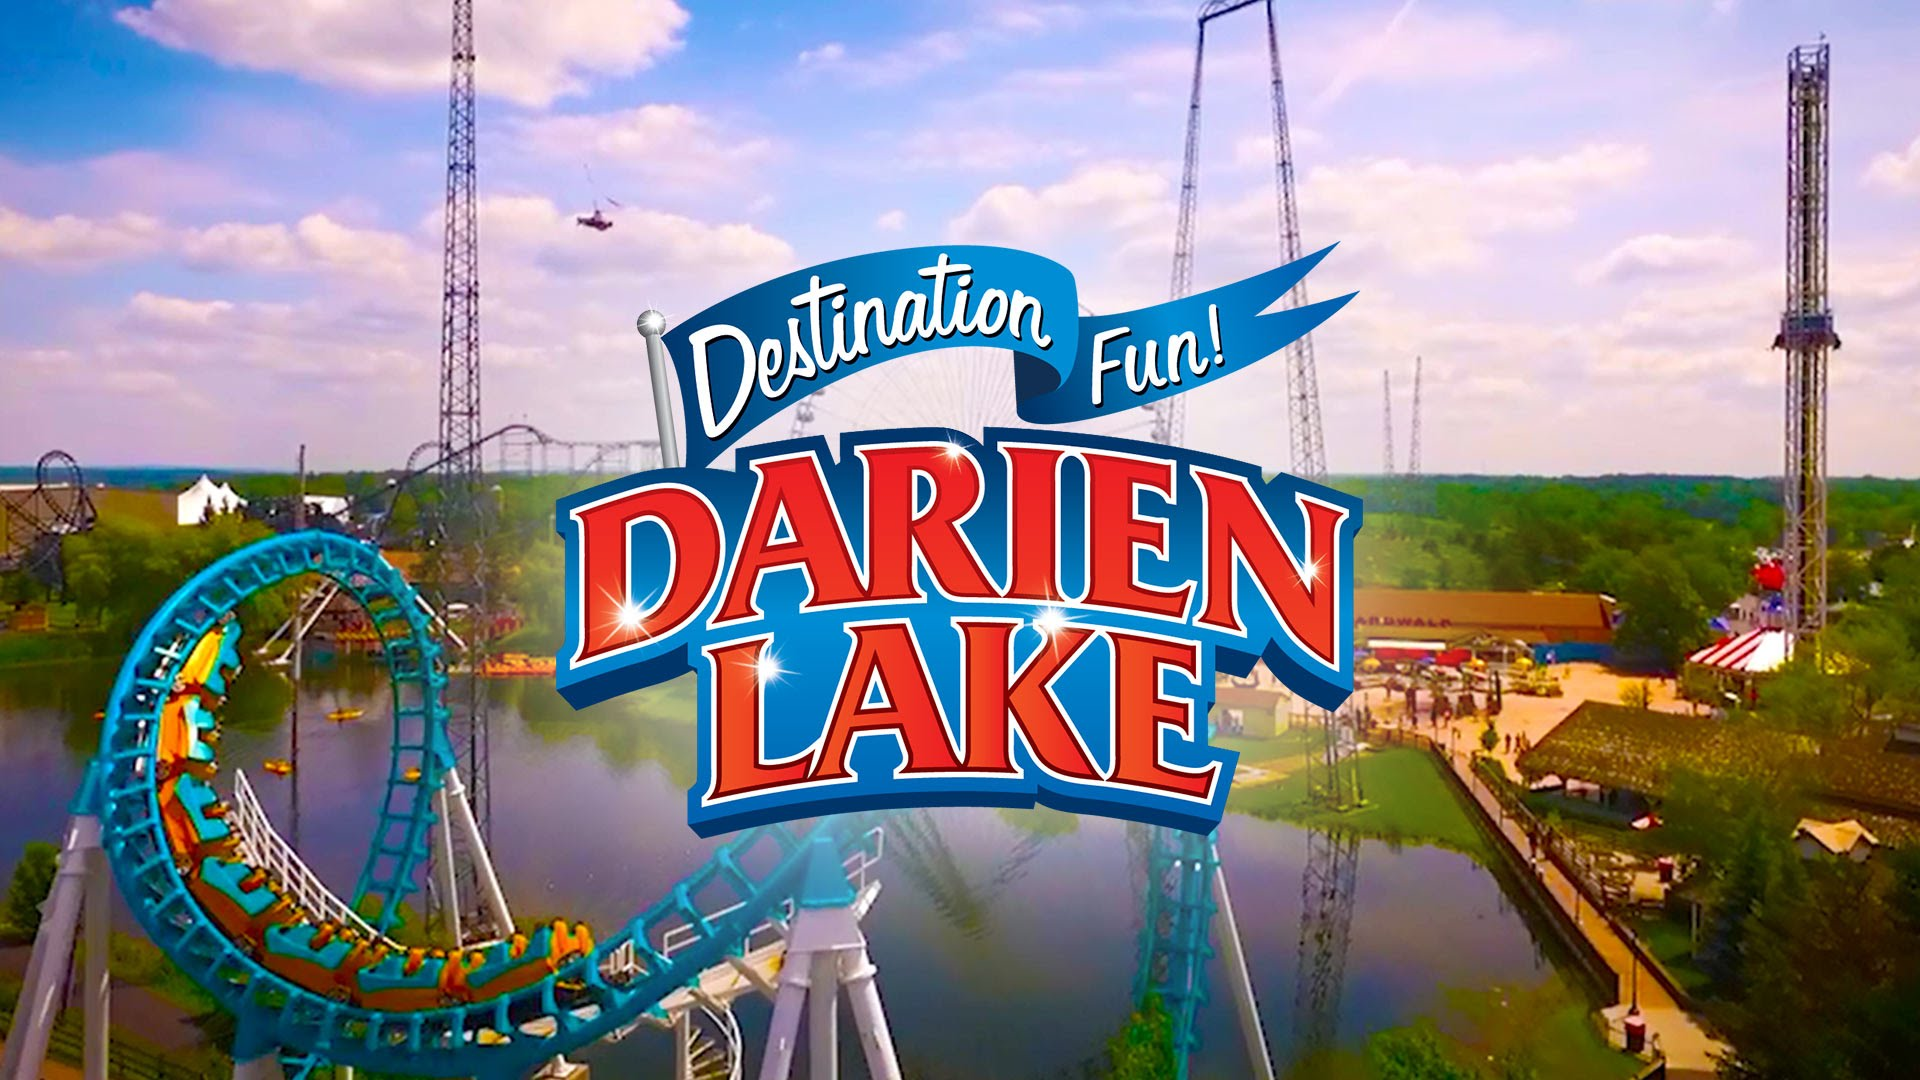 Enter to win A Family night at Darien Lake